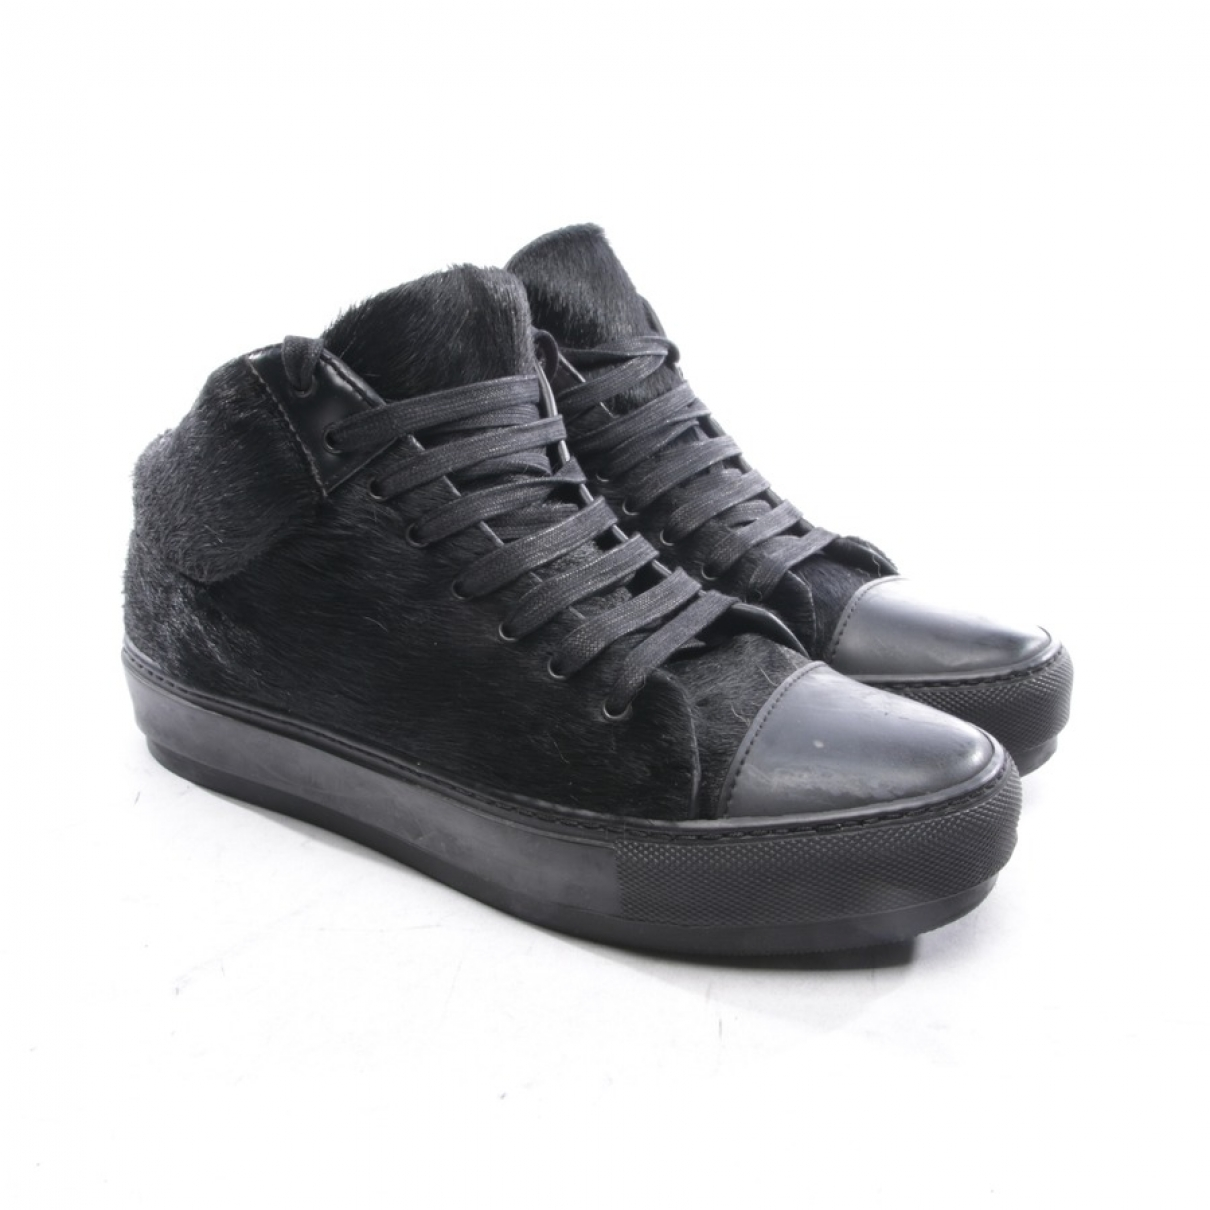 Acne Studios \N Black Pony-style calfskin Trainers for Women 37 EU